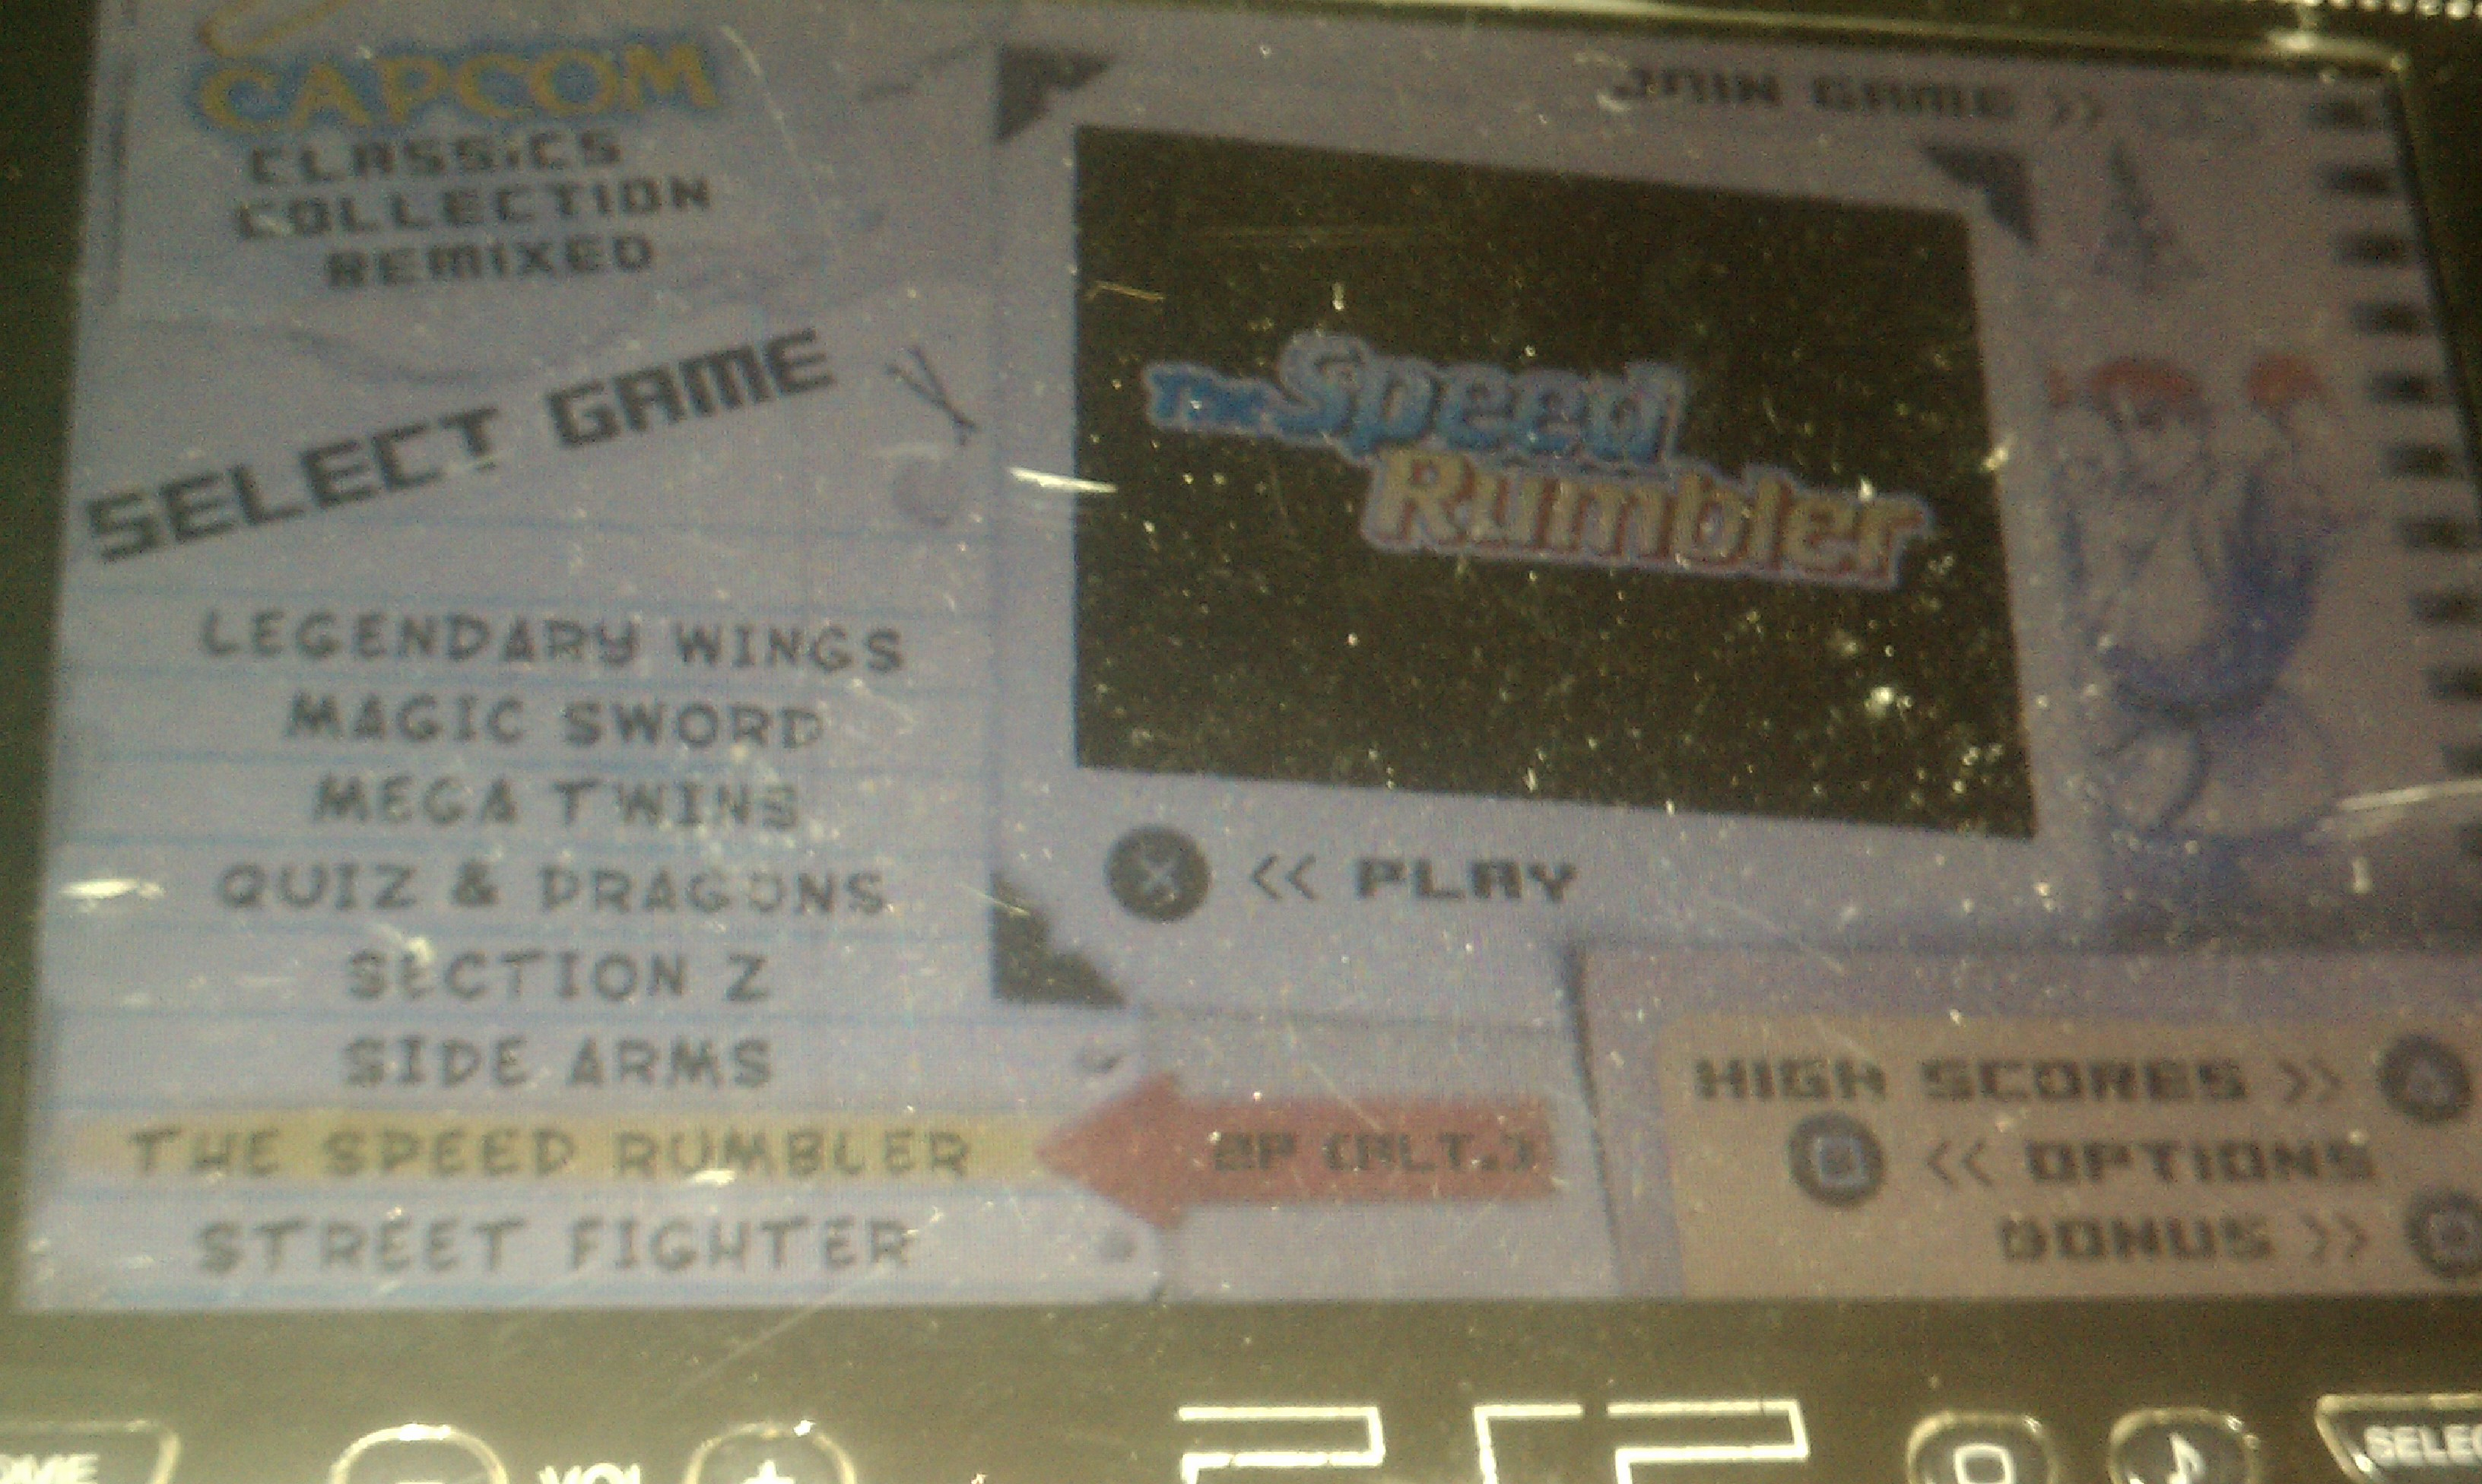 S.BAZ: Capcom Classics Collection Remixed: The Speed Rumbler [Game Settings Super Easy] (PSP) 6,500 points on 2018-09-25 19:23:45